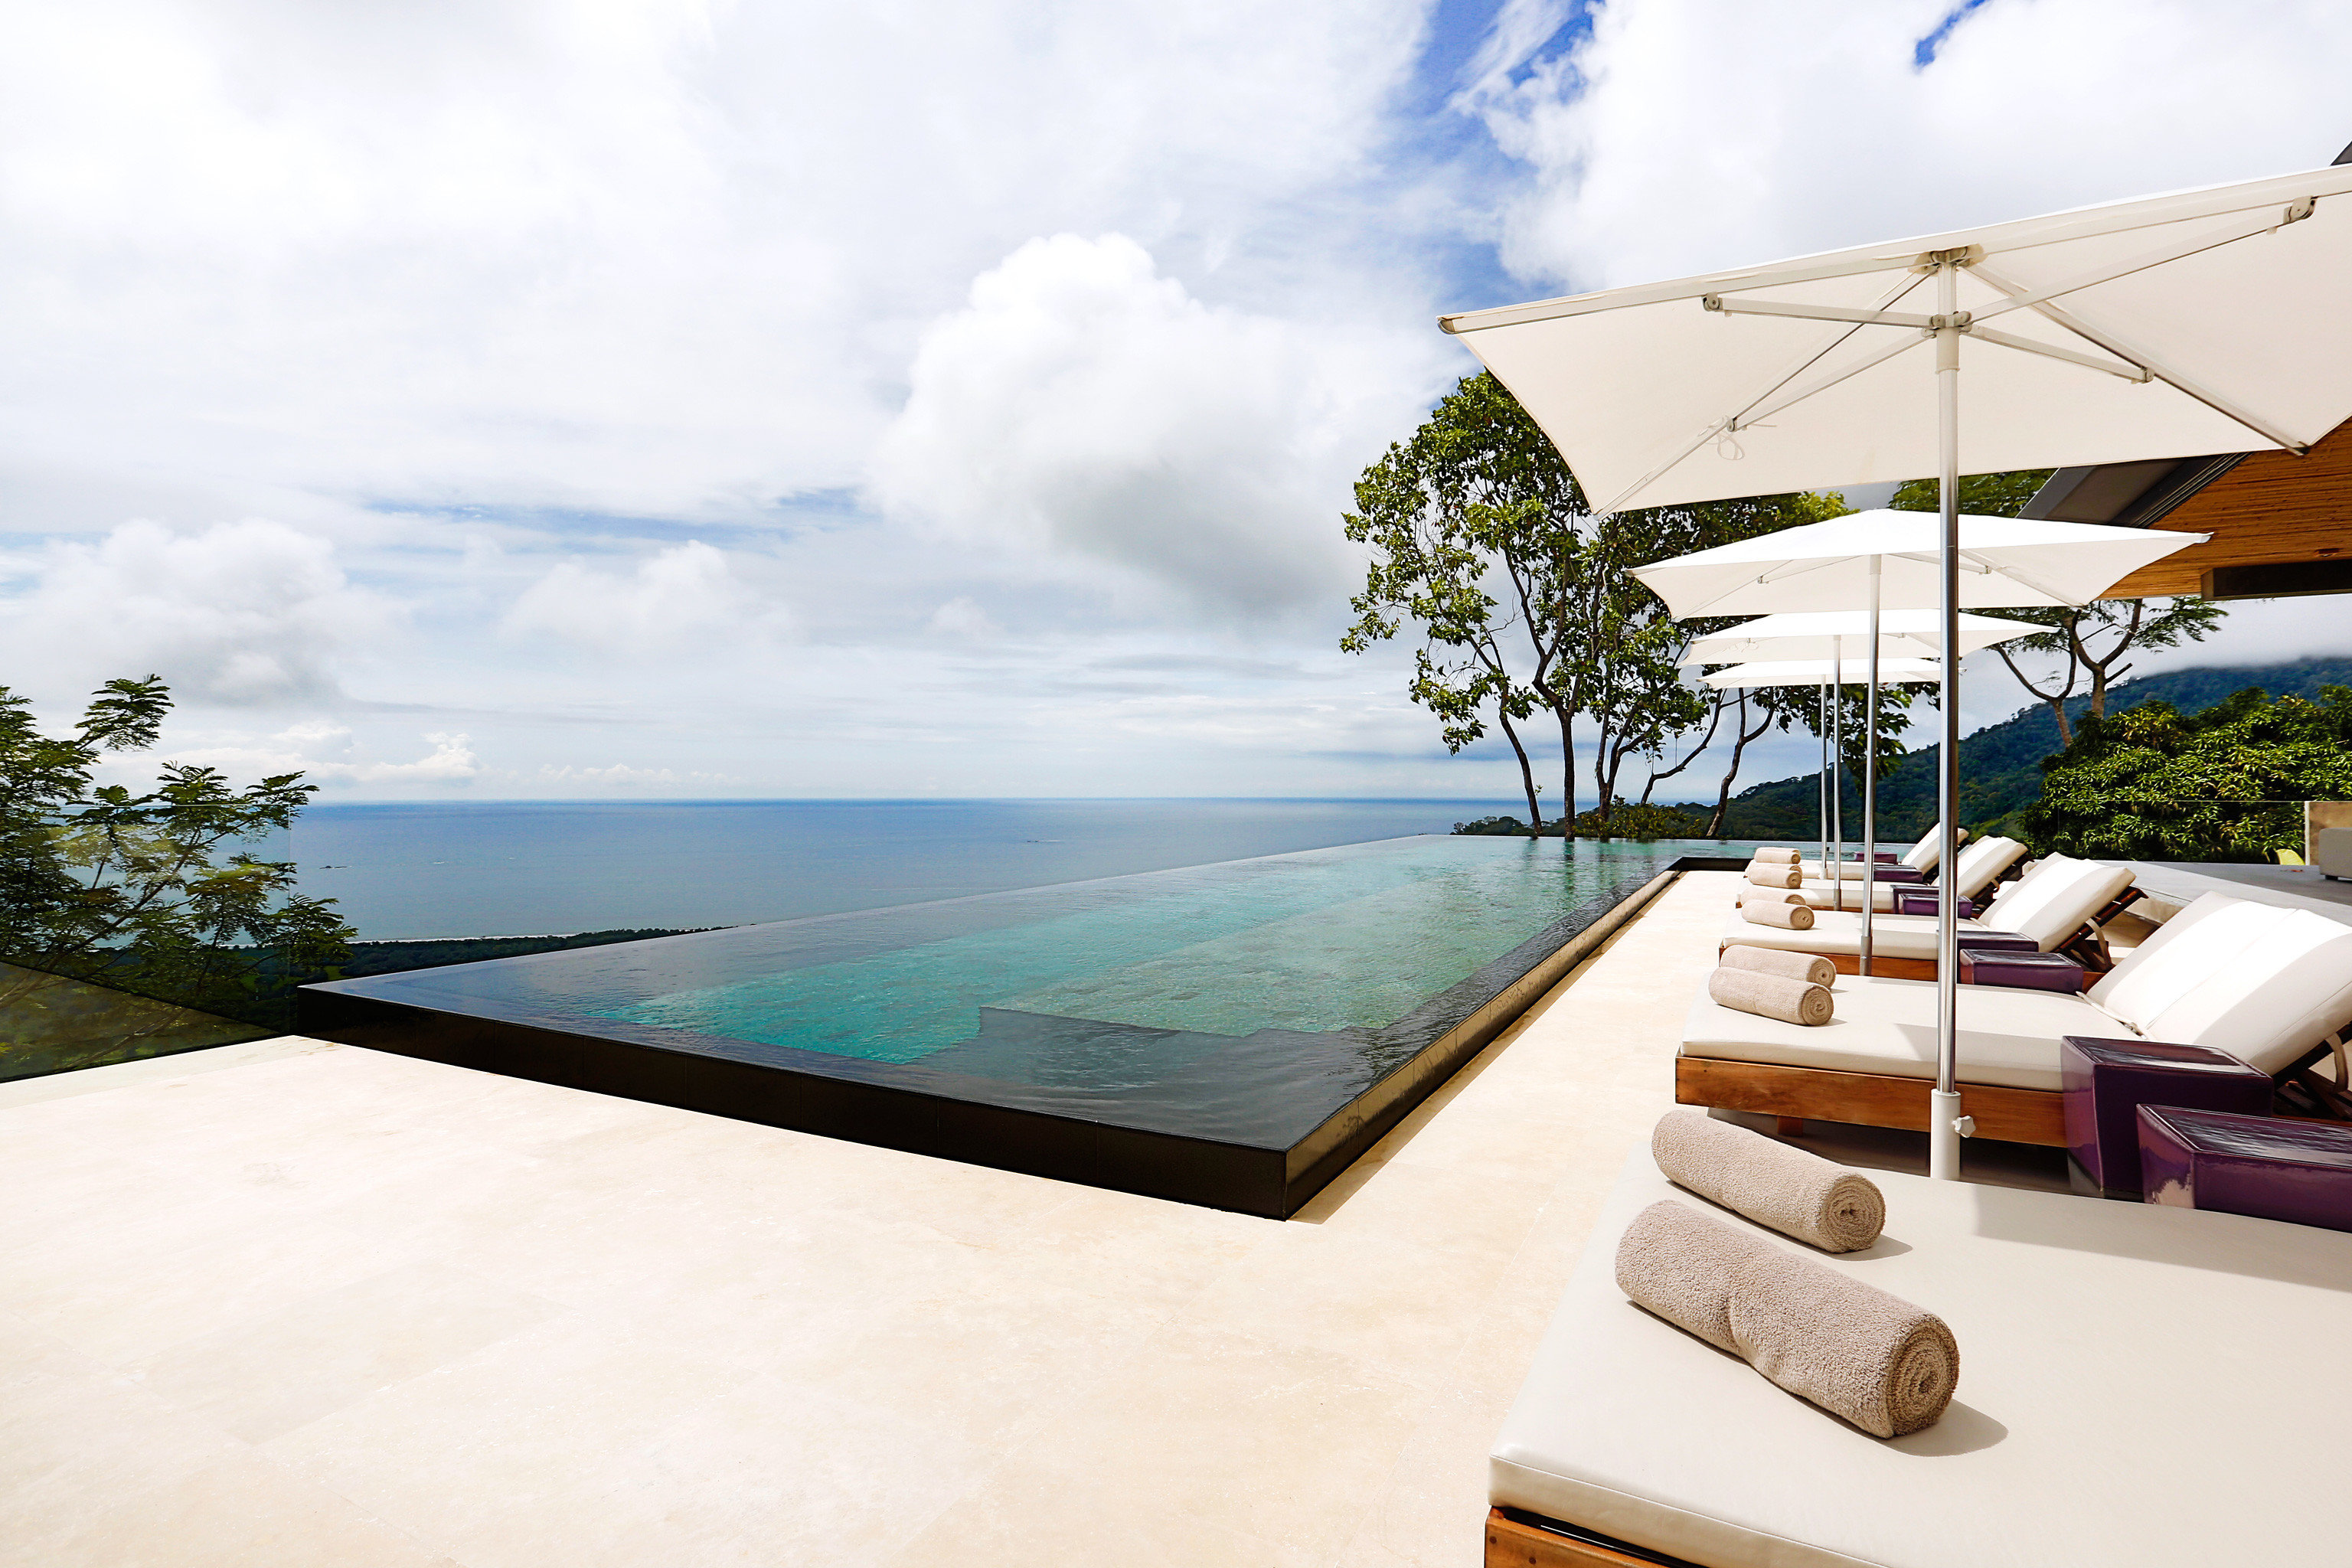 Adult-only Boutique Hotels Modern Pool Resort Romance Romantic sky property Sea caribbean Ocean swimming pool Beach Villa Coast